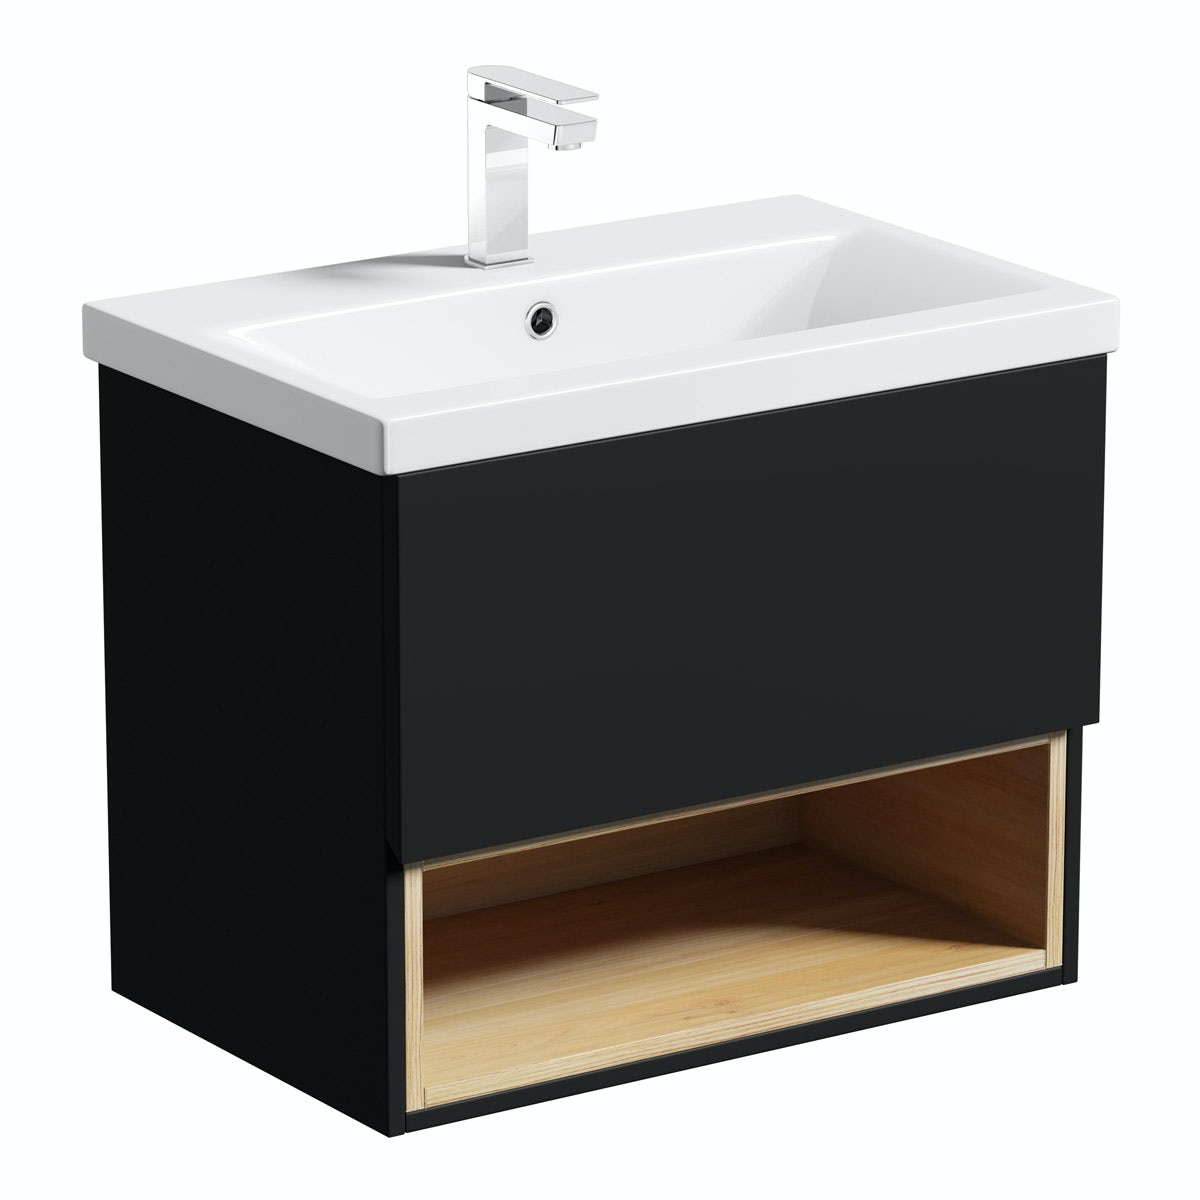 Mode Tate anthracite & oak 600mm wall hung vanity unit with basin